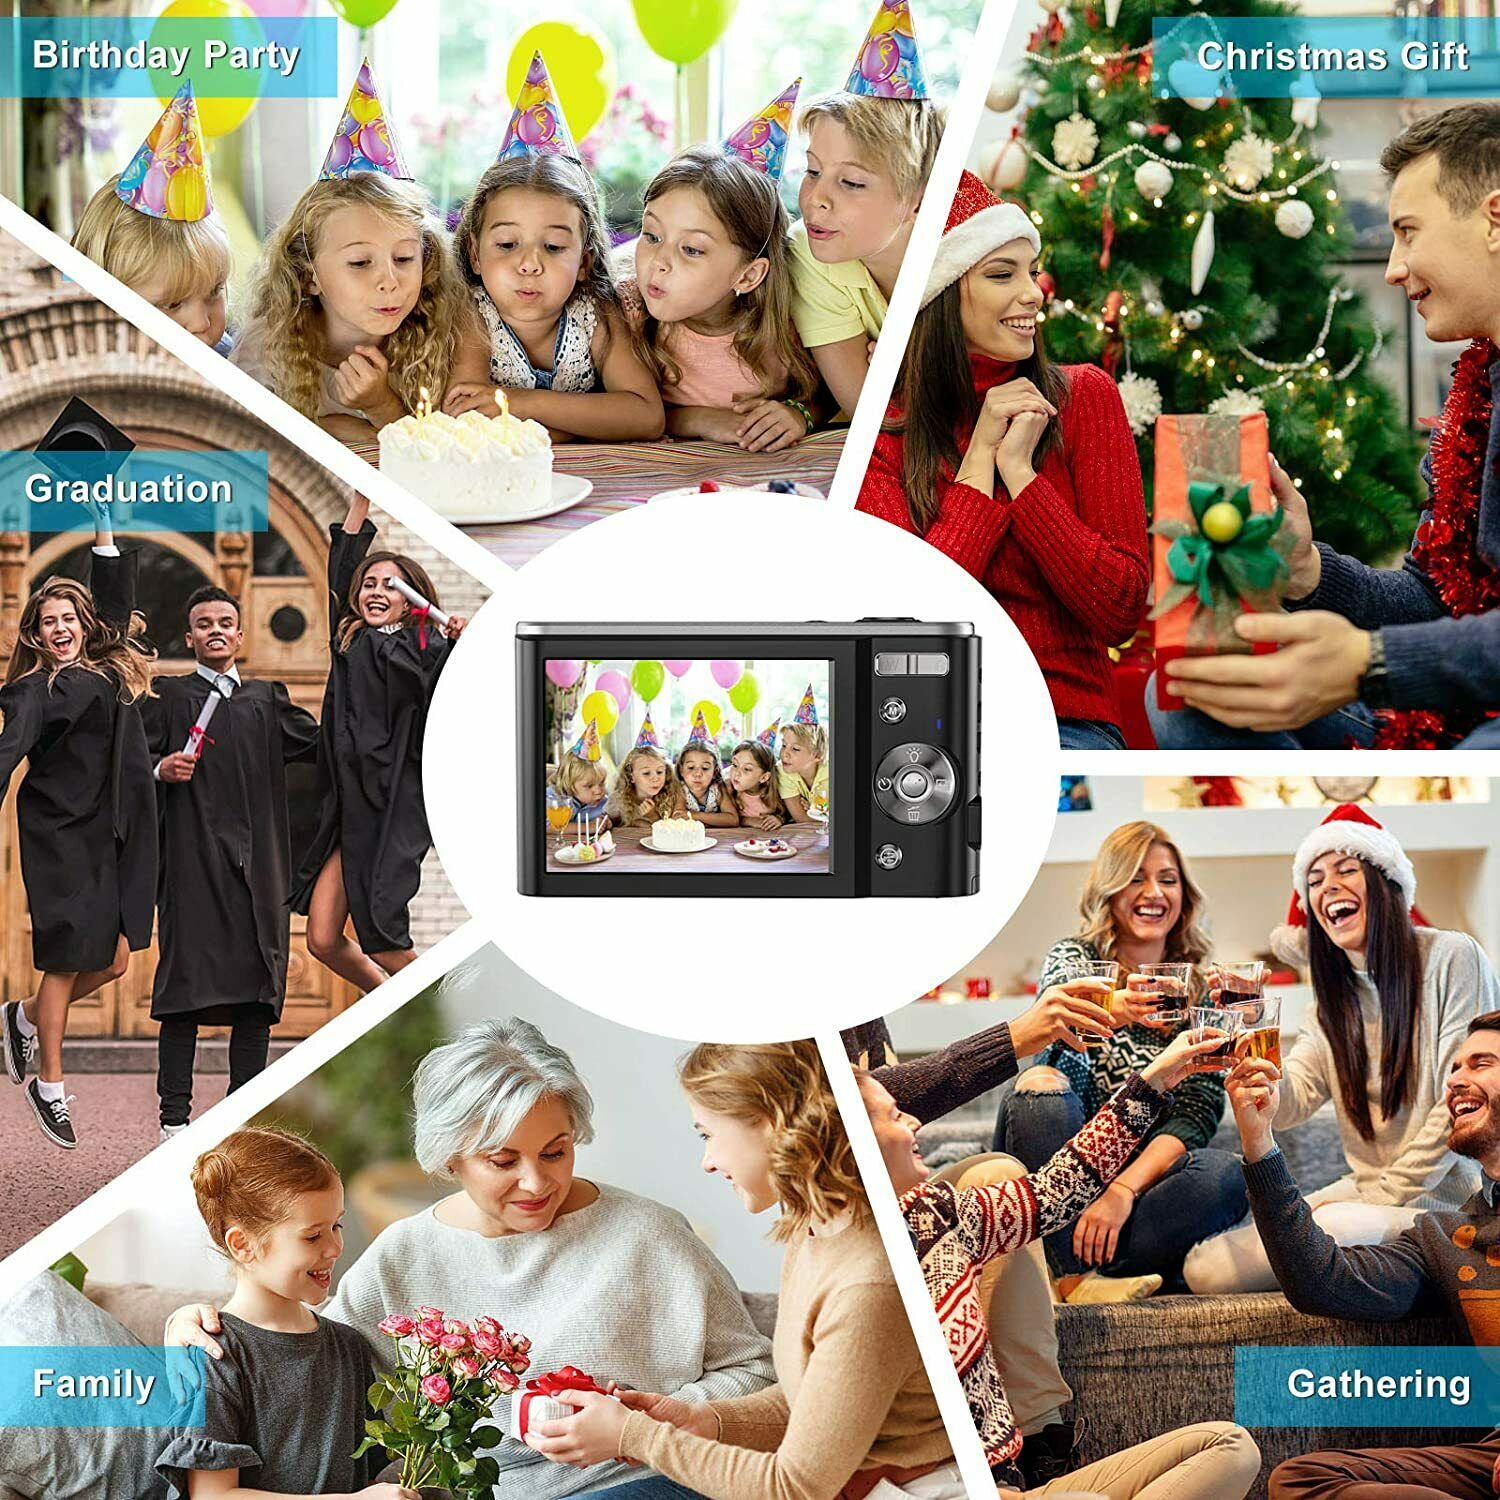 44MP Small Digital Camera 2.7K 2.88inch IPS Screen 16X Zoom Face Detection Vlogging Camera for Photography Beginners Kids enlarge